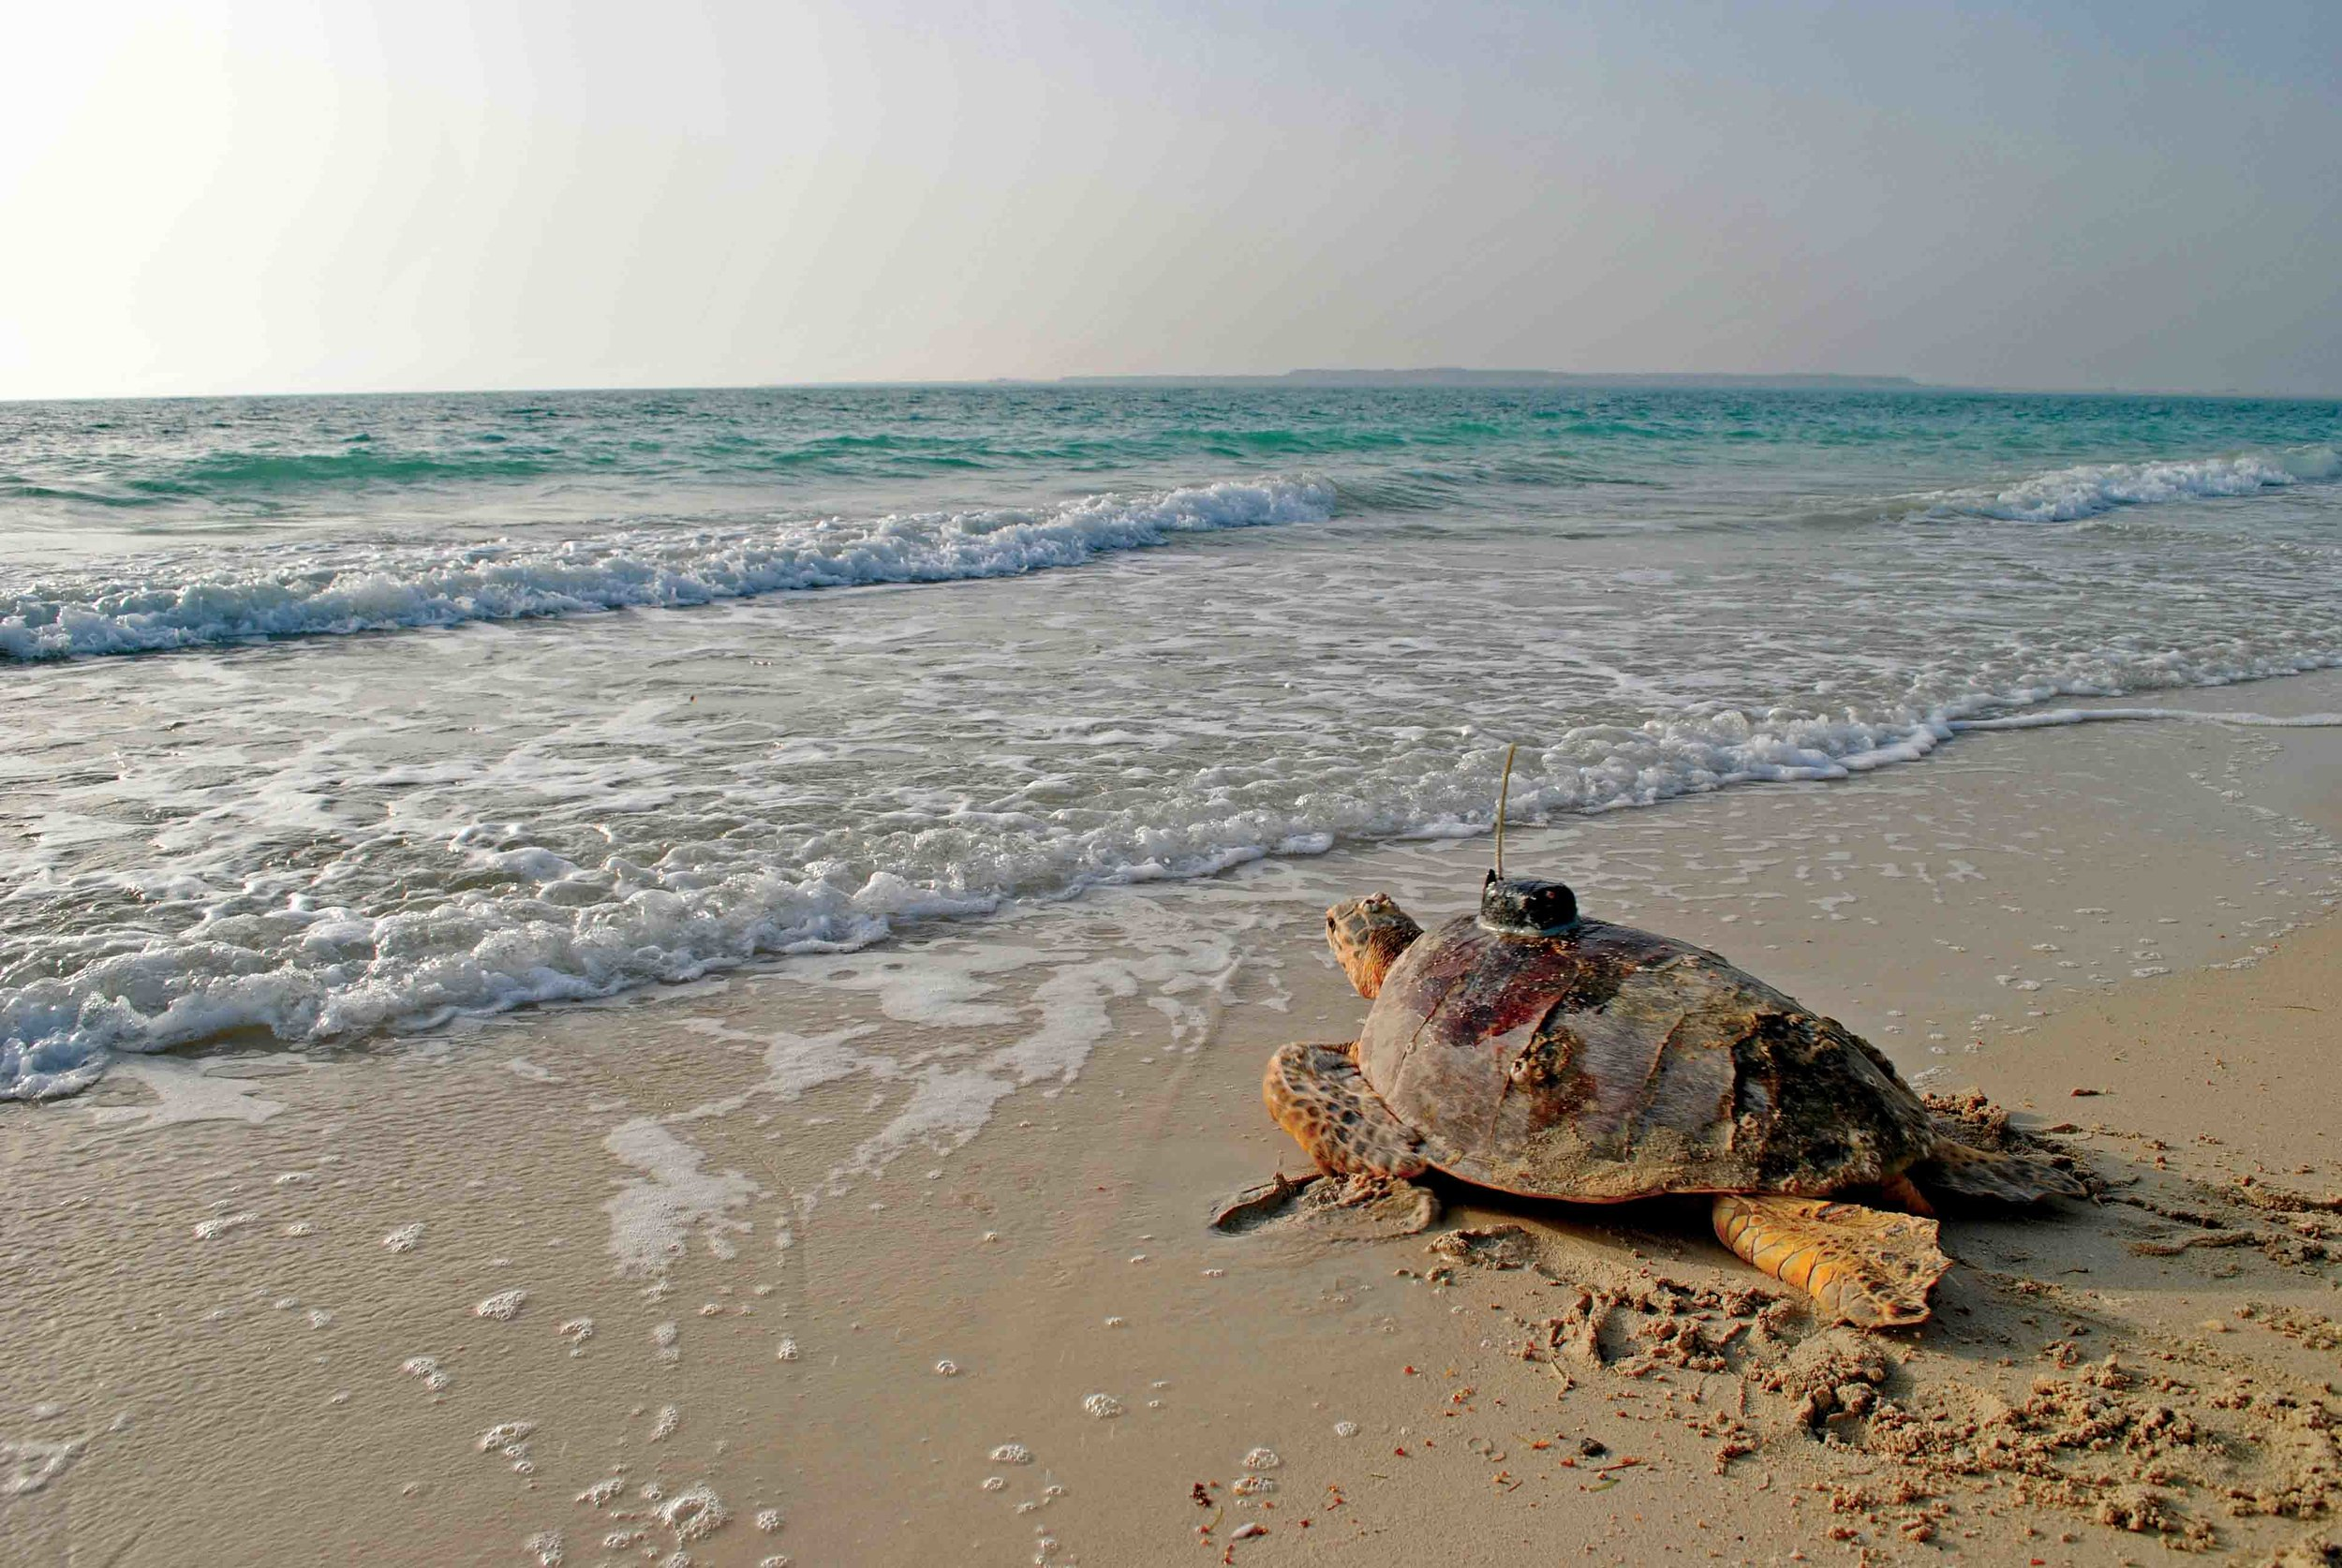 A satellite-tagged hawksbill returns to sea at Sir Bu Nair Island, United Arab Emirates. Seventy-five hawksbills were tracked from four different countries as part of efforts to identify Important Turtle Areas in the Gulf. © OLIVER KERR / EWS-WWF